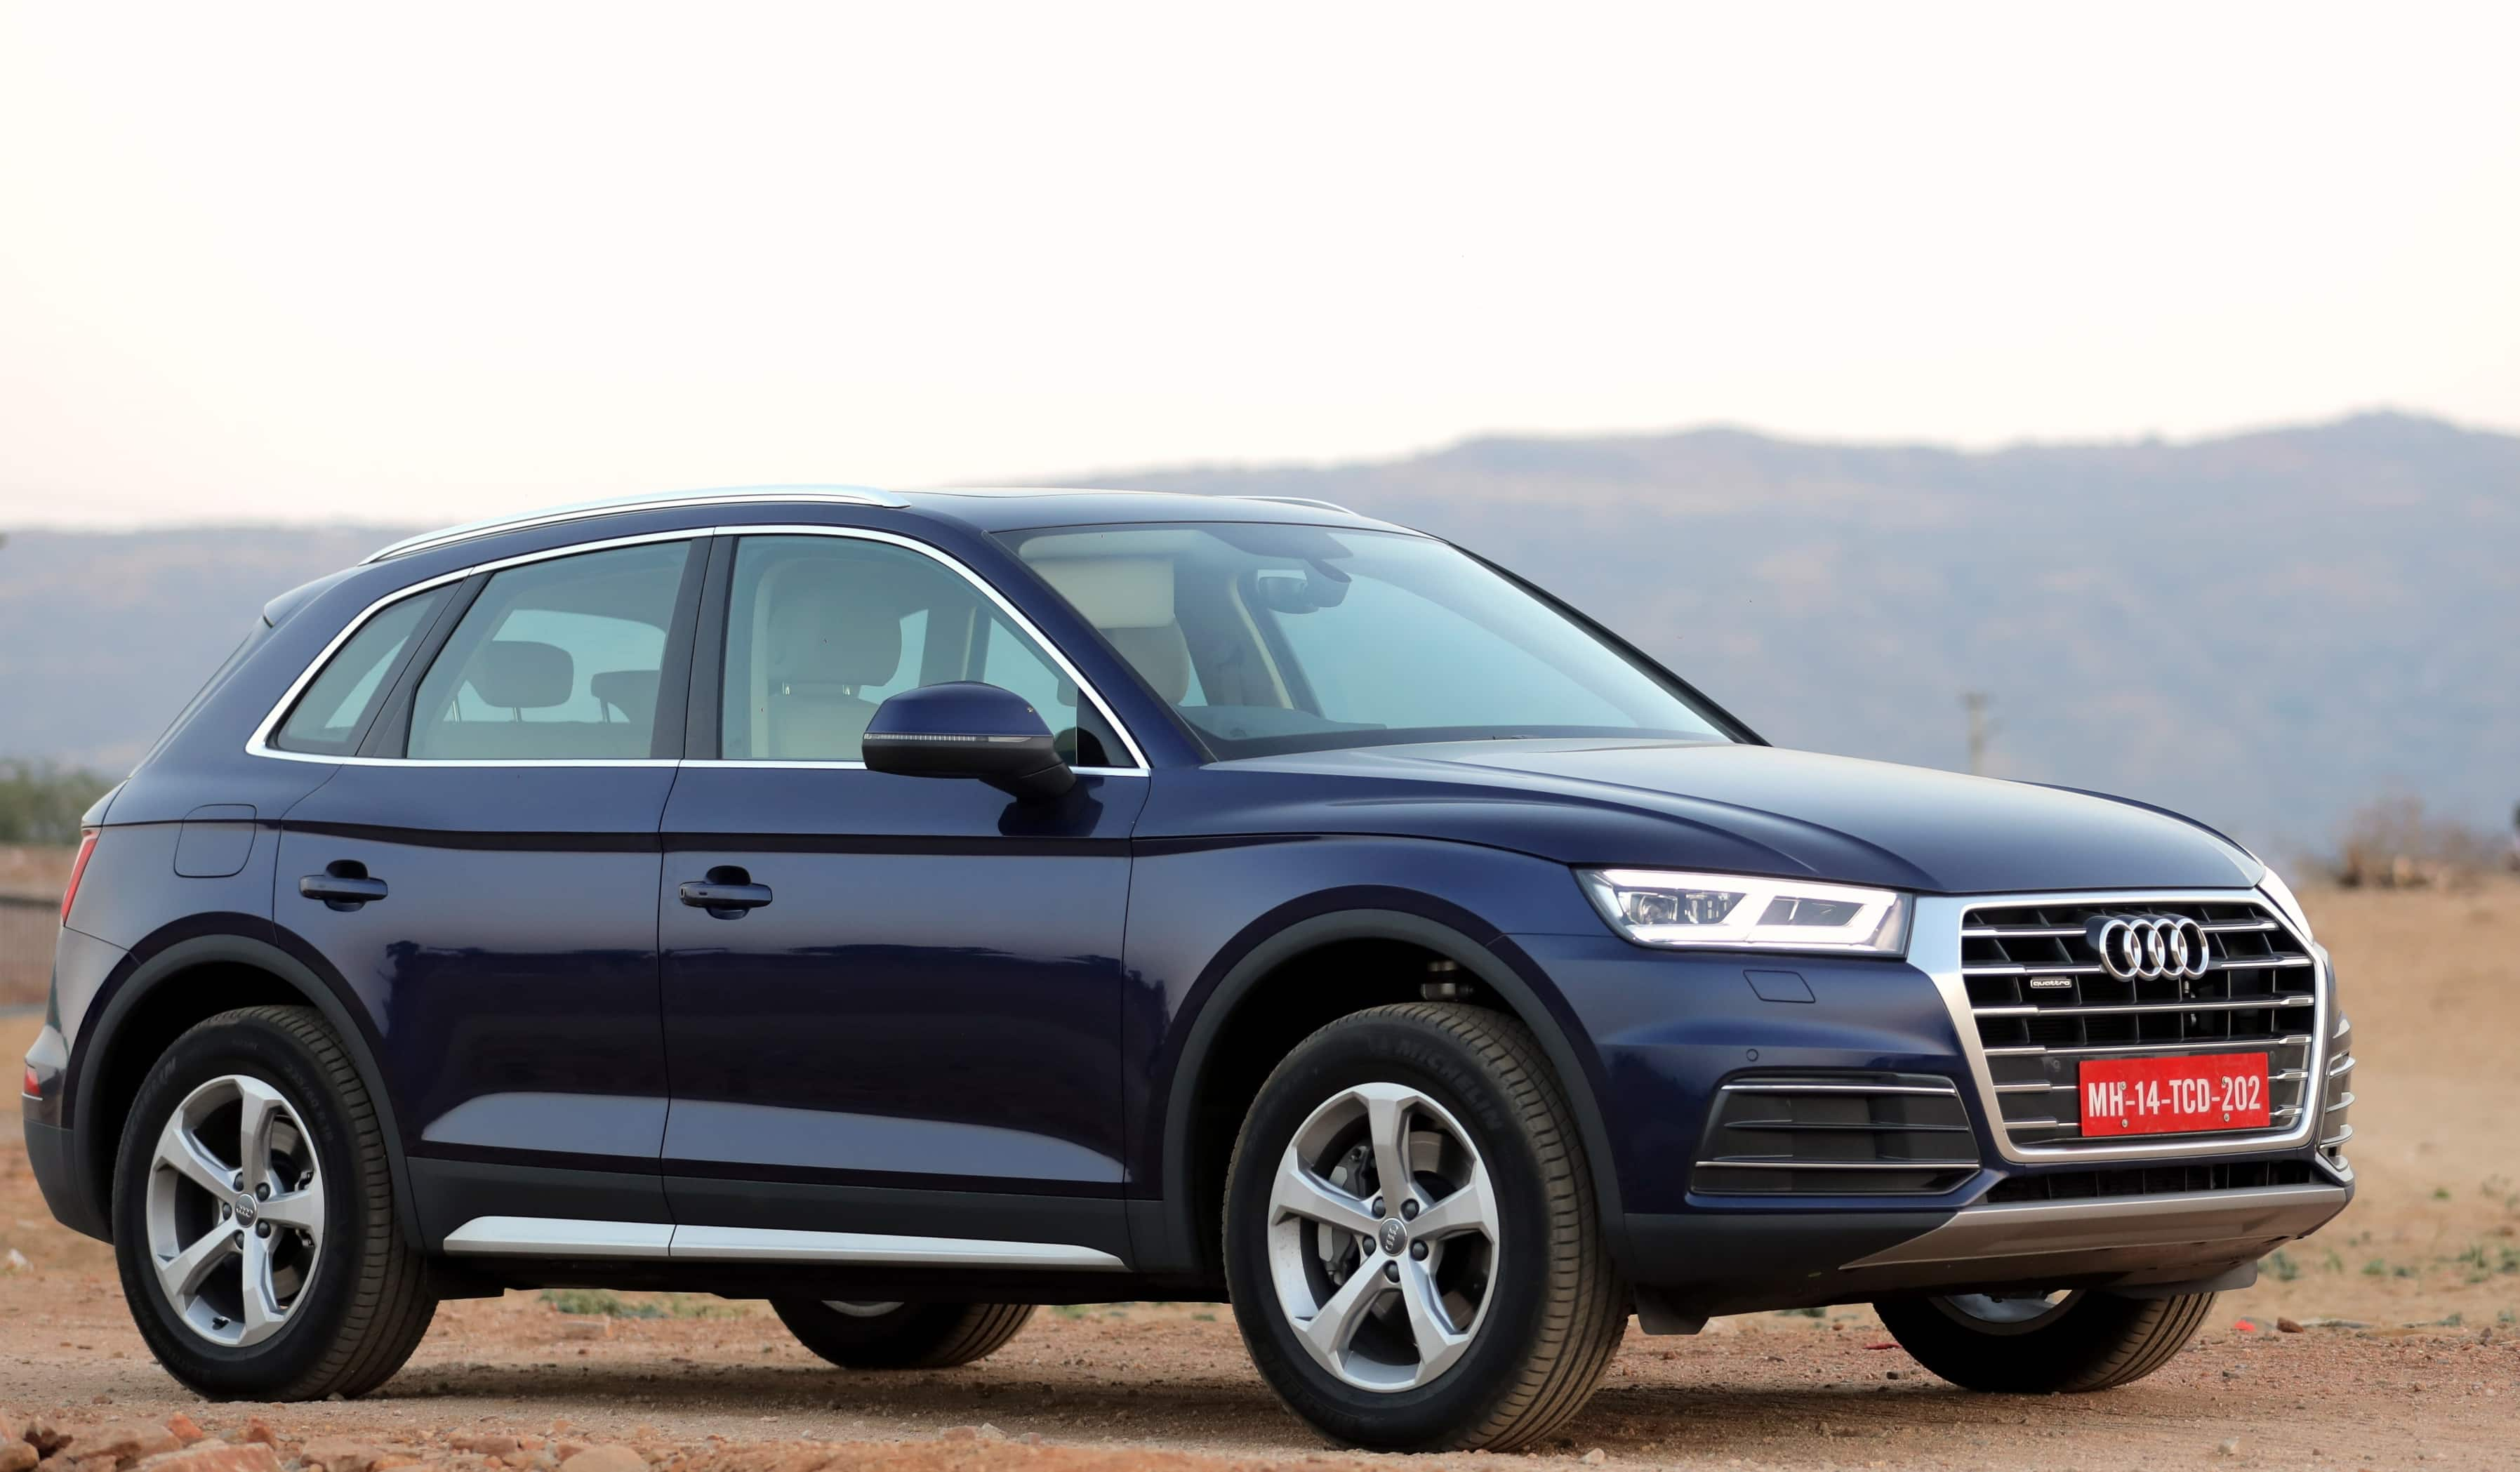 Audi Q5 2018 Launched In India At INR 53.25 Lakh; Interior, Specifications,  Images